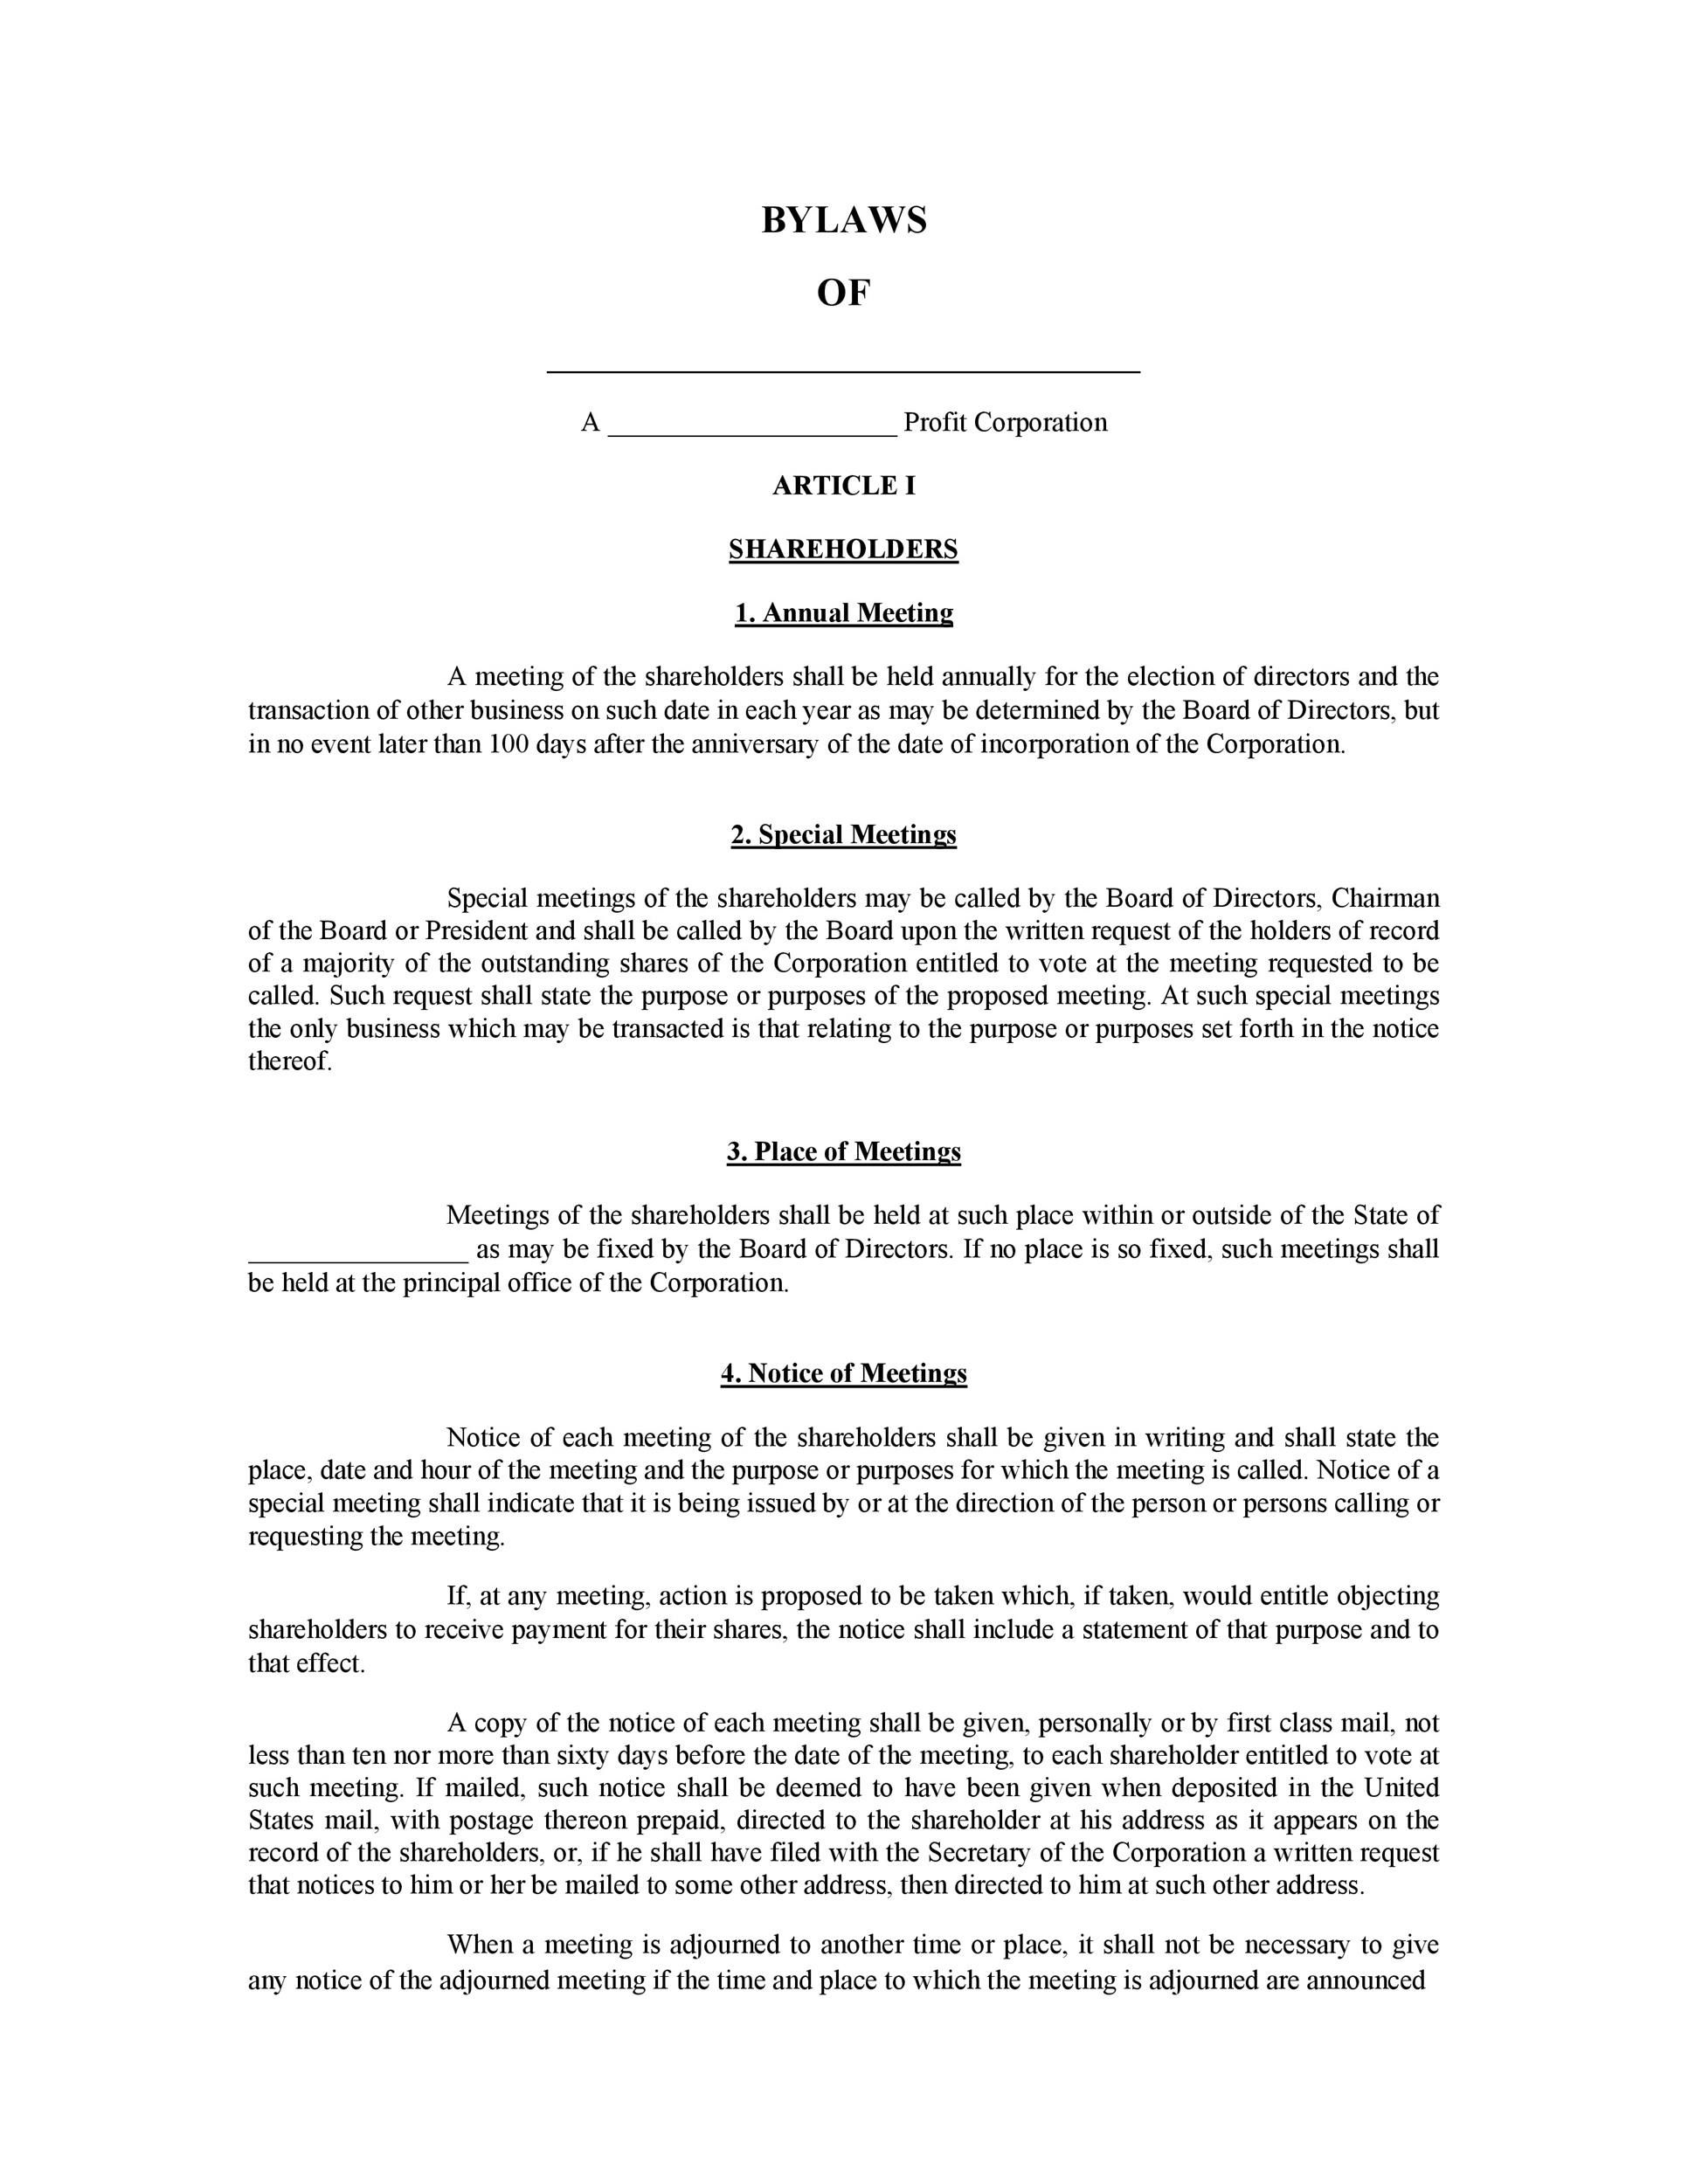 005 Beautiful Corporate Bylaw Template Pdf Example  SampleFull